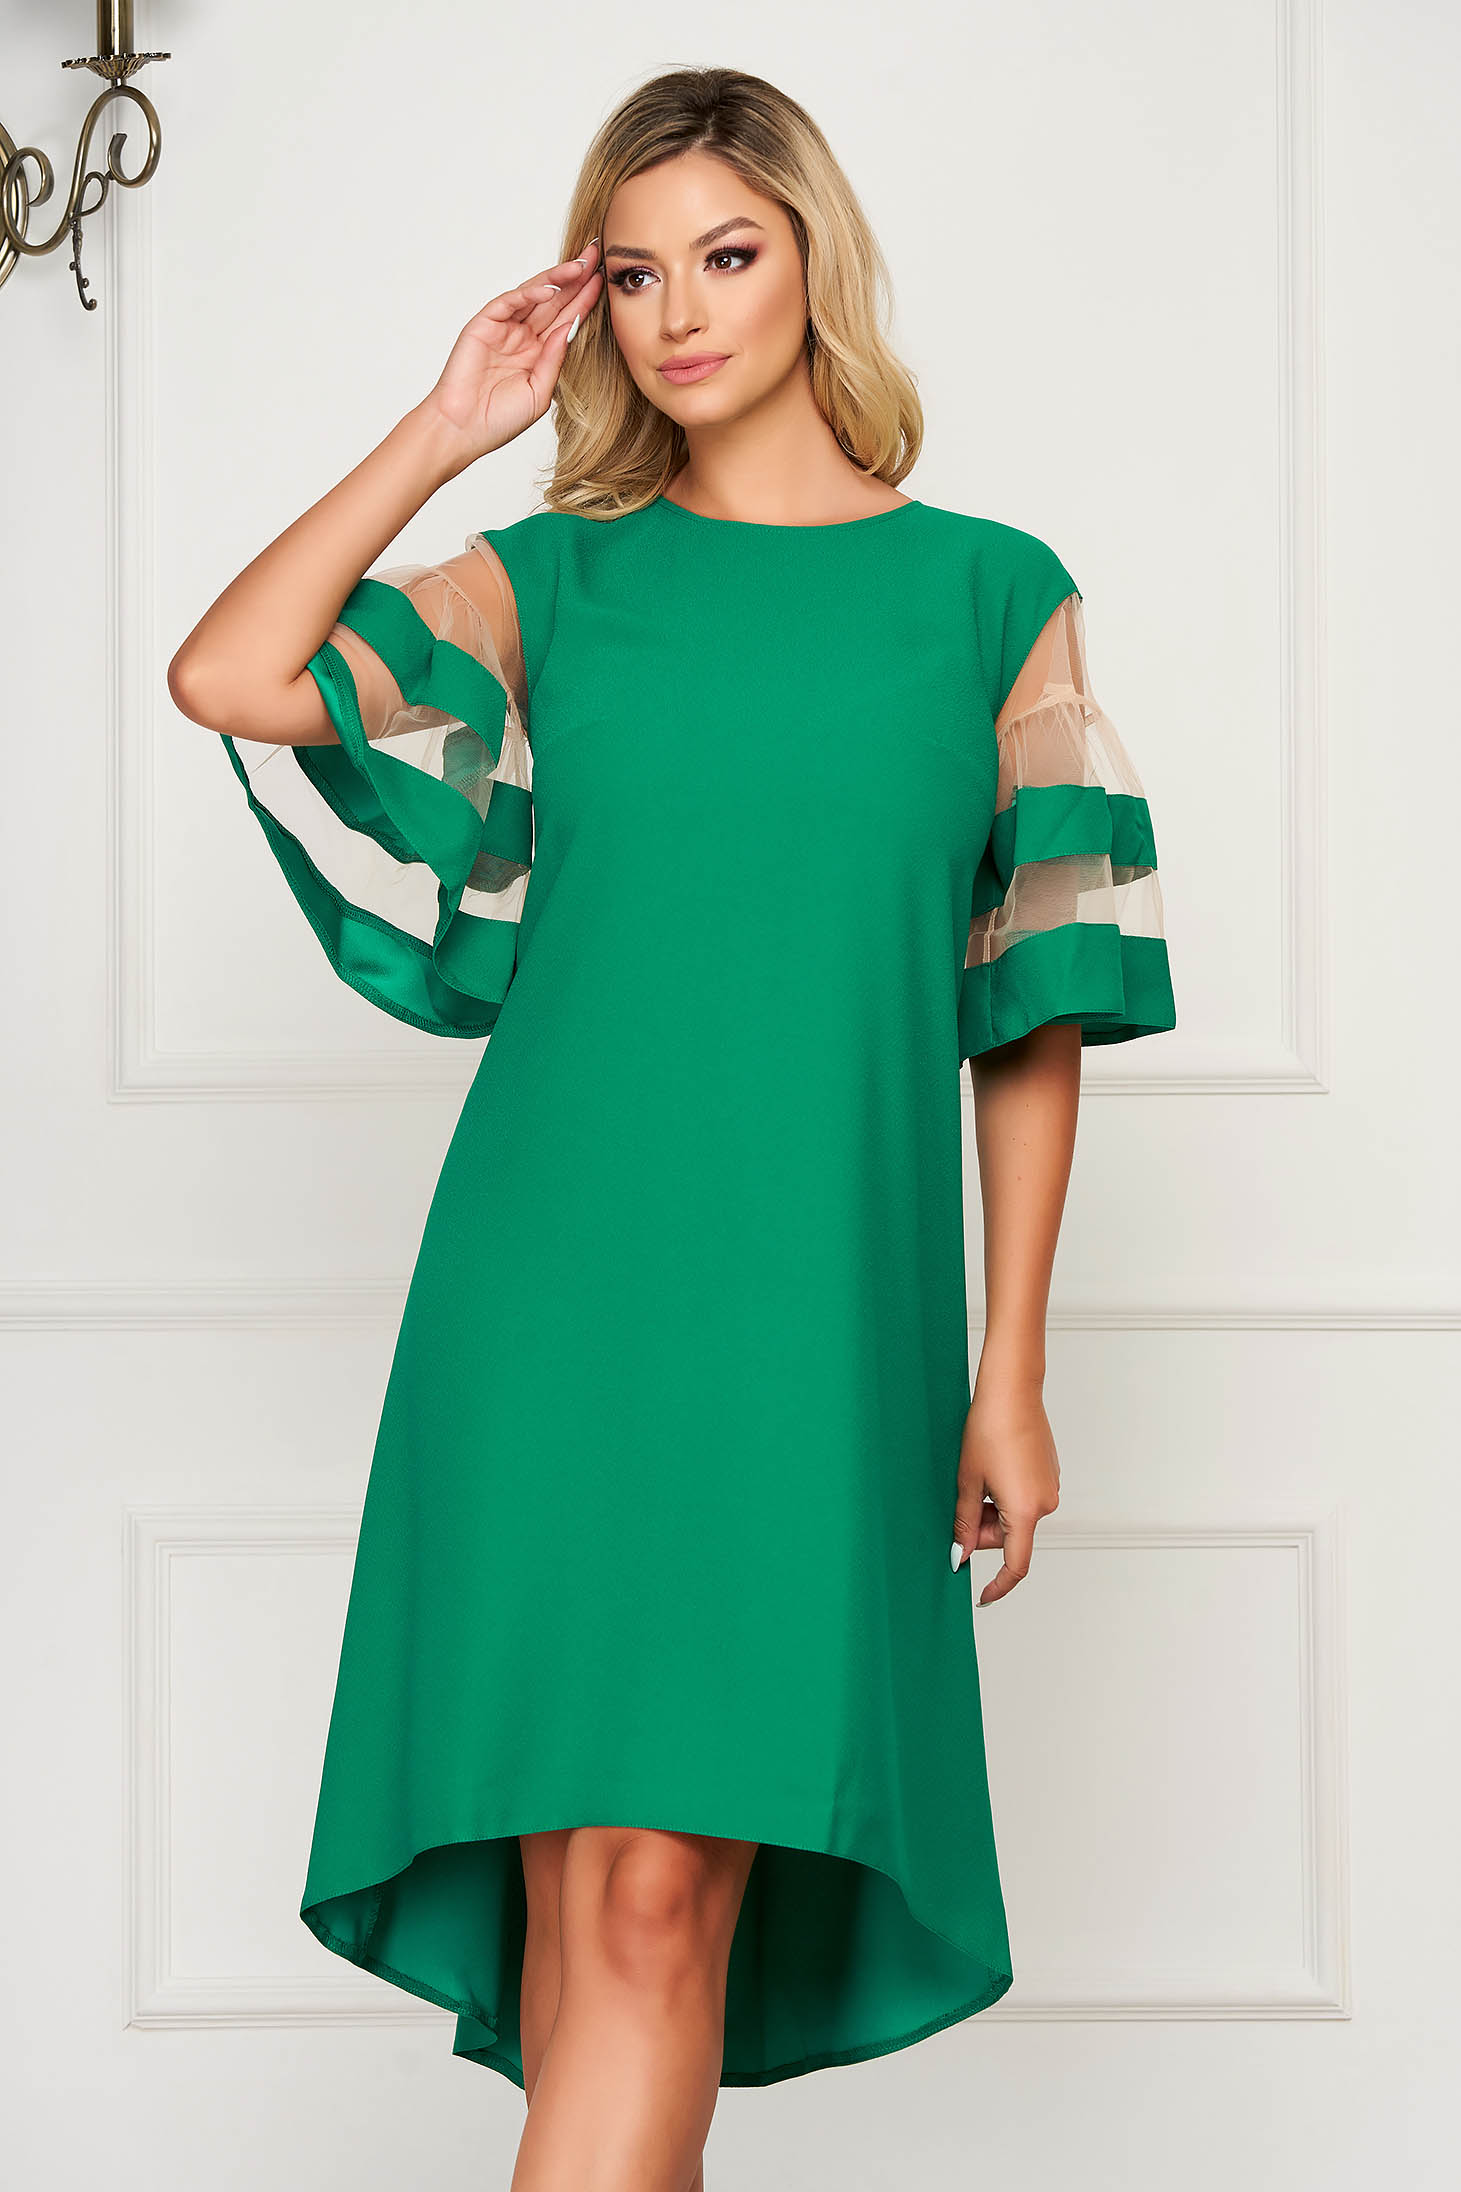 Green elegant flared asymmetrical dress thin fabric short sleeves